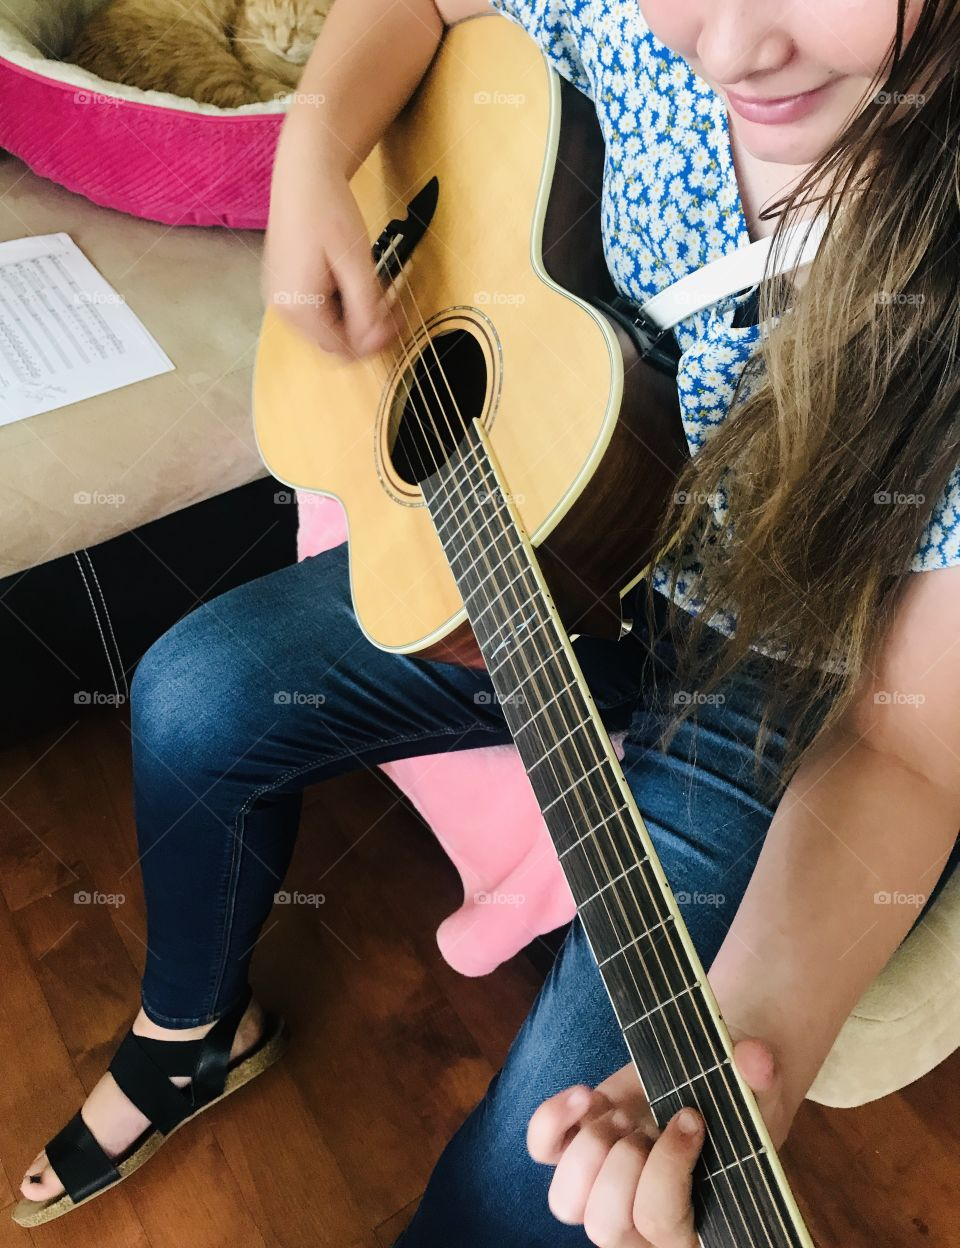 Young girl smiling as she strums on her favorite guitar with her kitty sitting with her in background.